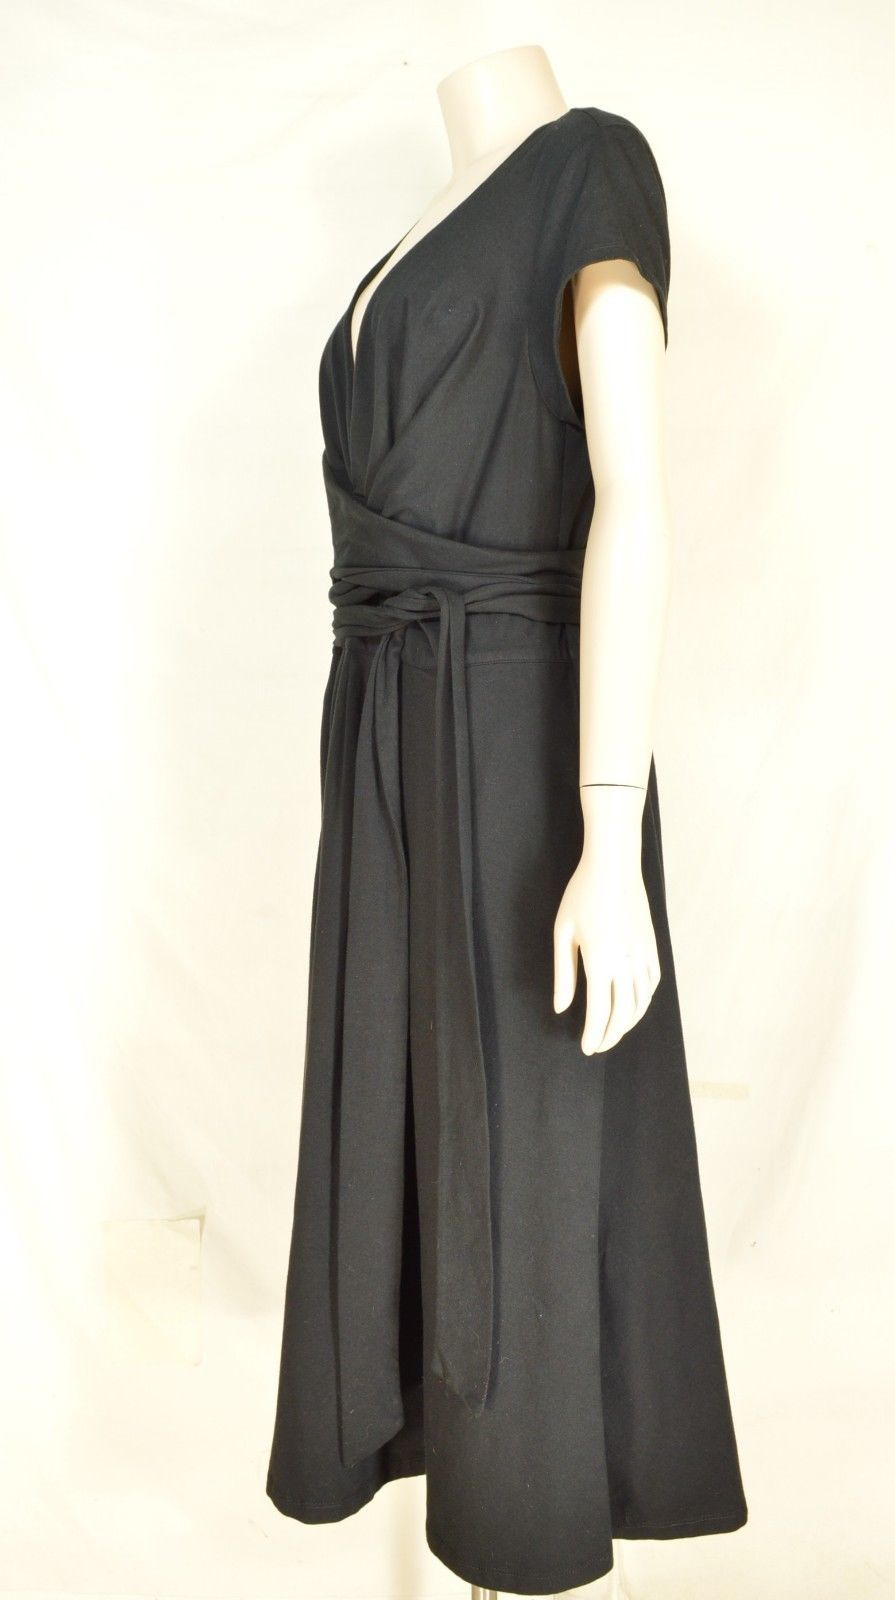 eShakti Custom dress SZ XL black heavy knit low cut neck self tie at waist